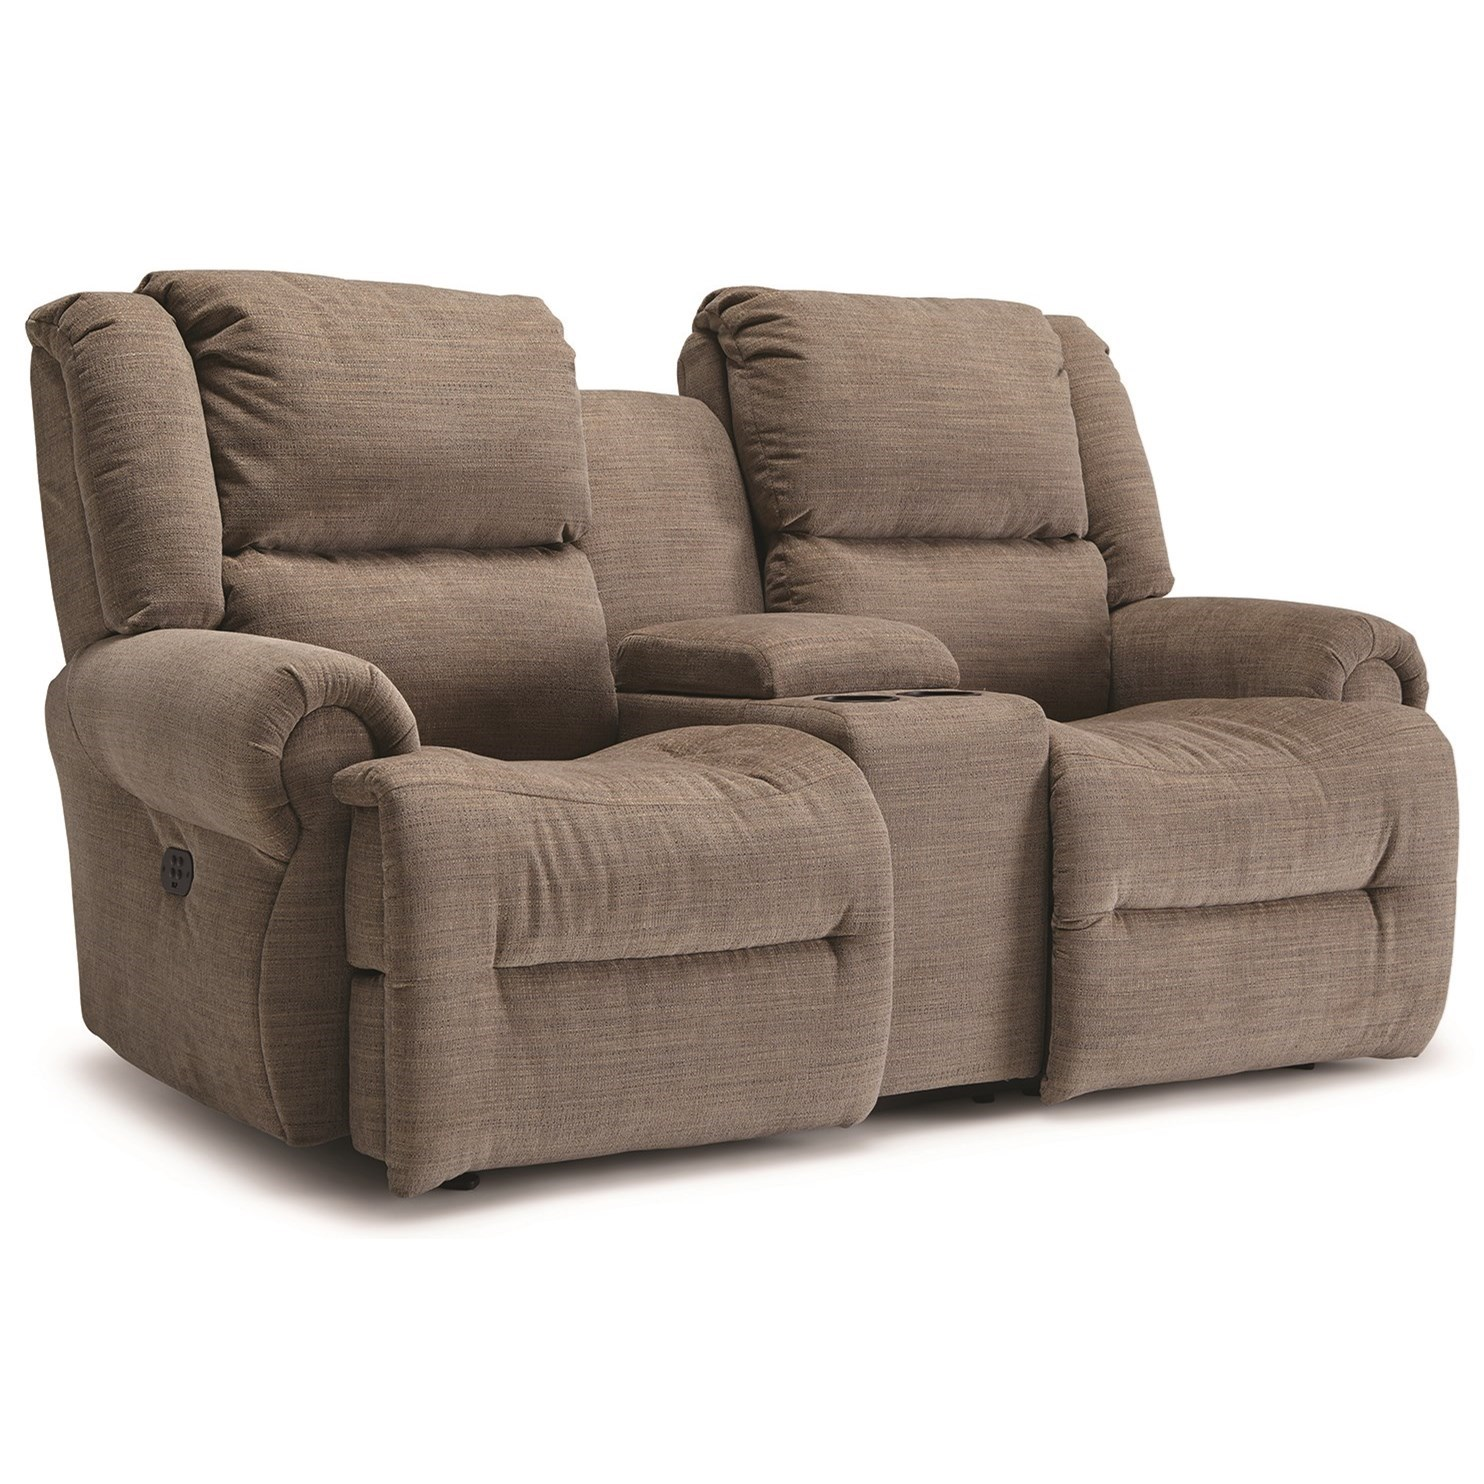 Power Rocking Reclining Loveseat With Cupholder Storage